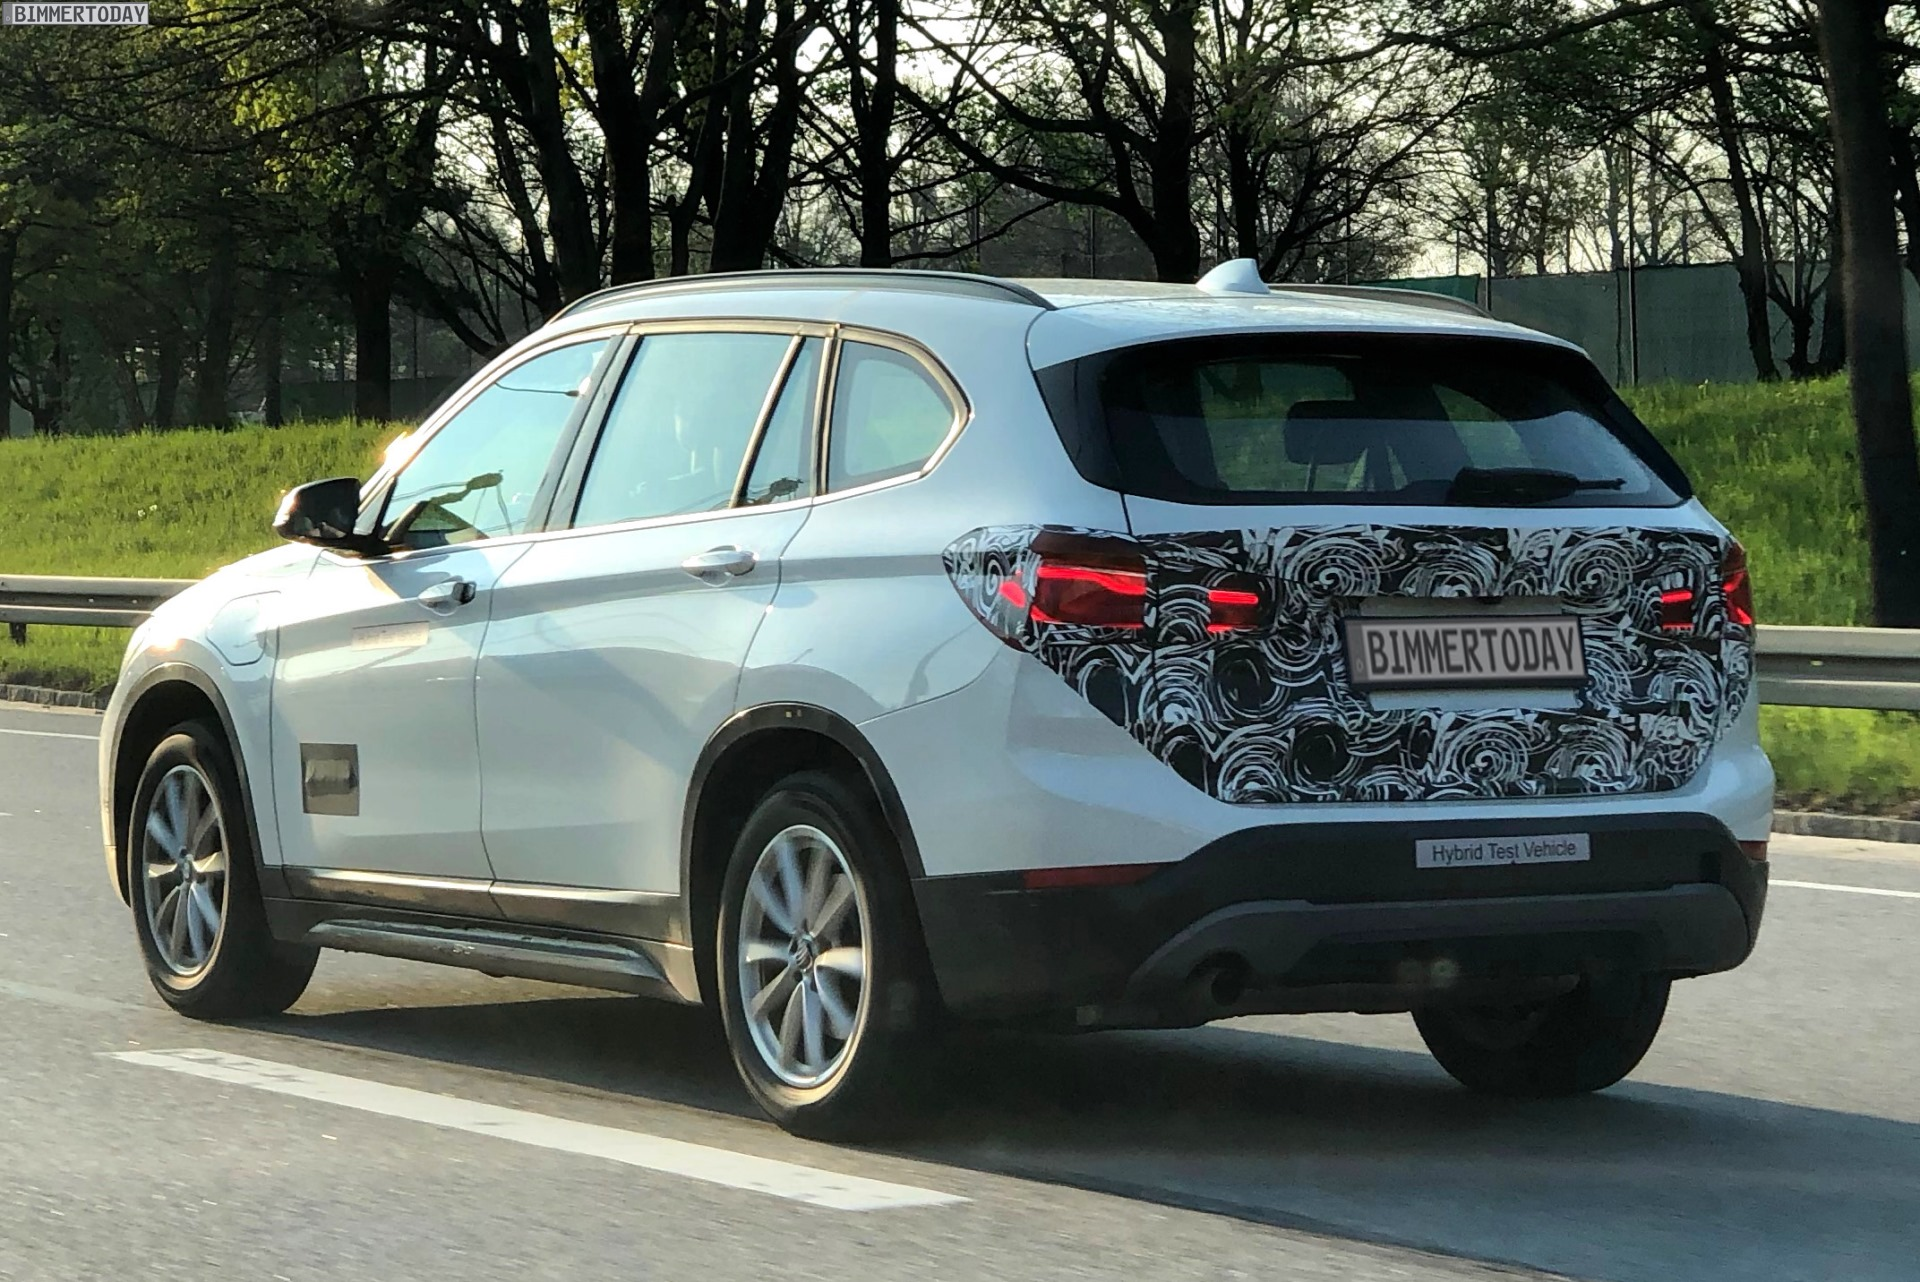 2019 BMW X1 xDrive25e iPerformance Plug in Hybrid F48 LCI 02 1